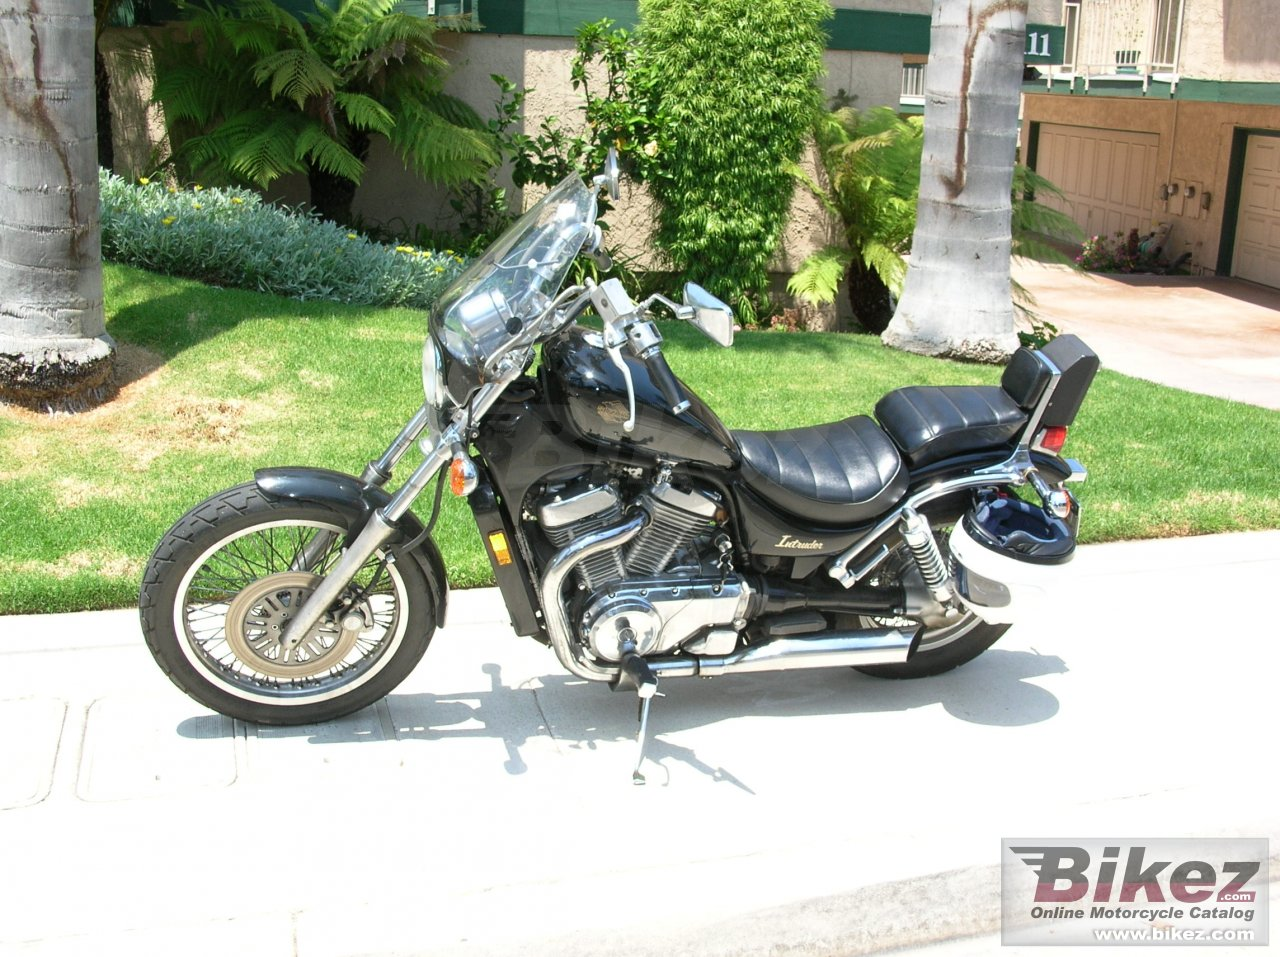 Big  us 750 gl intruder picture and wallpaper from Bikez.com